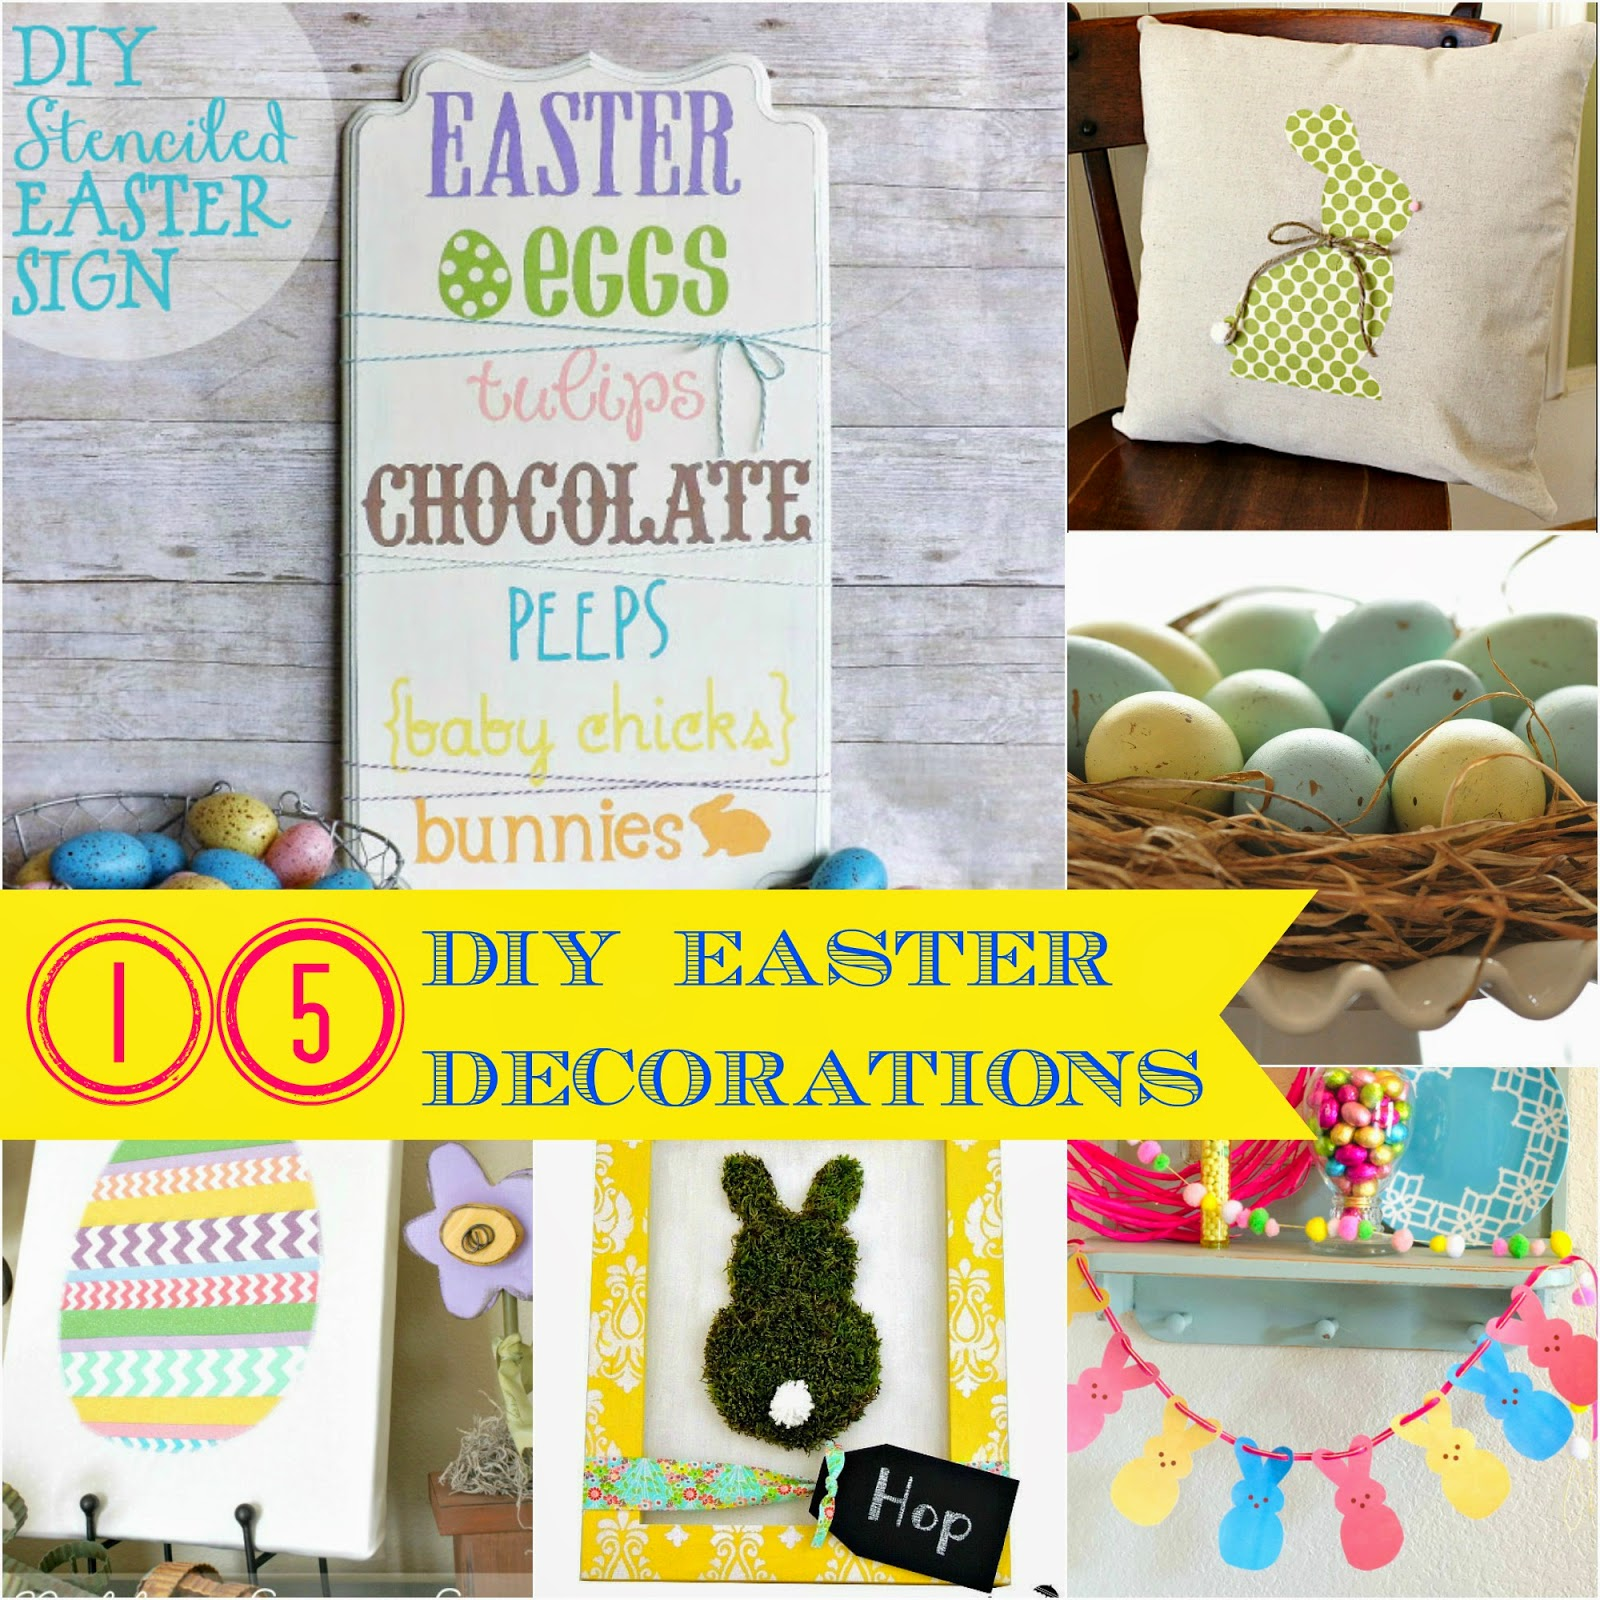 I Dig Pinterest Easter Link Party Features 15 Diy Easter Decorations For The Home